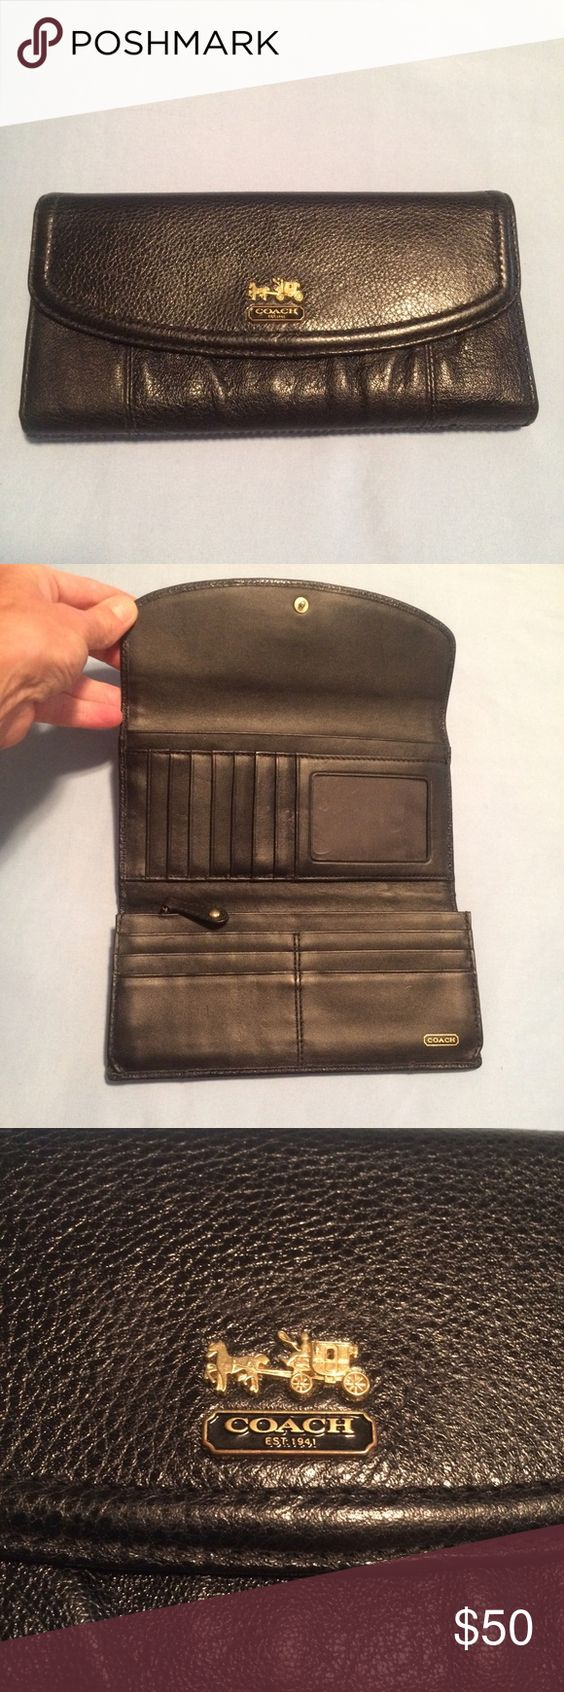 Coach Wallet Authentic Coach Wallet. Pre-loved condition, couple of tiny creases on clear plastic inside of the wallet (where you put your picture) shown in last photo, not very visible. Other than that, no signs of wear, excellent condition! Coach Bags Wallets